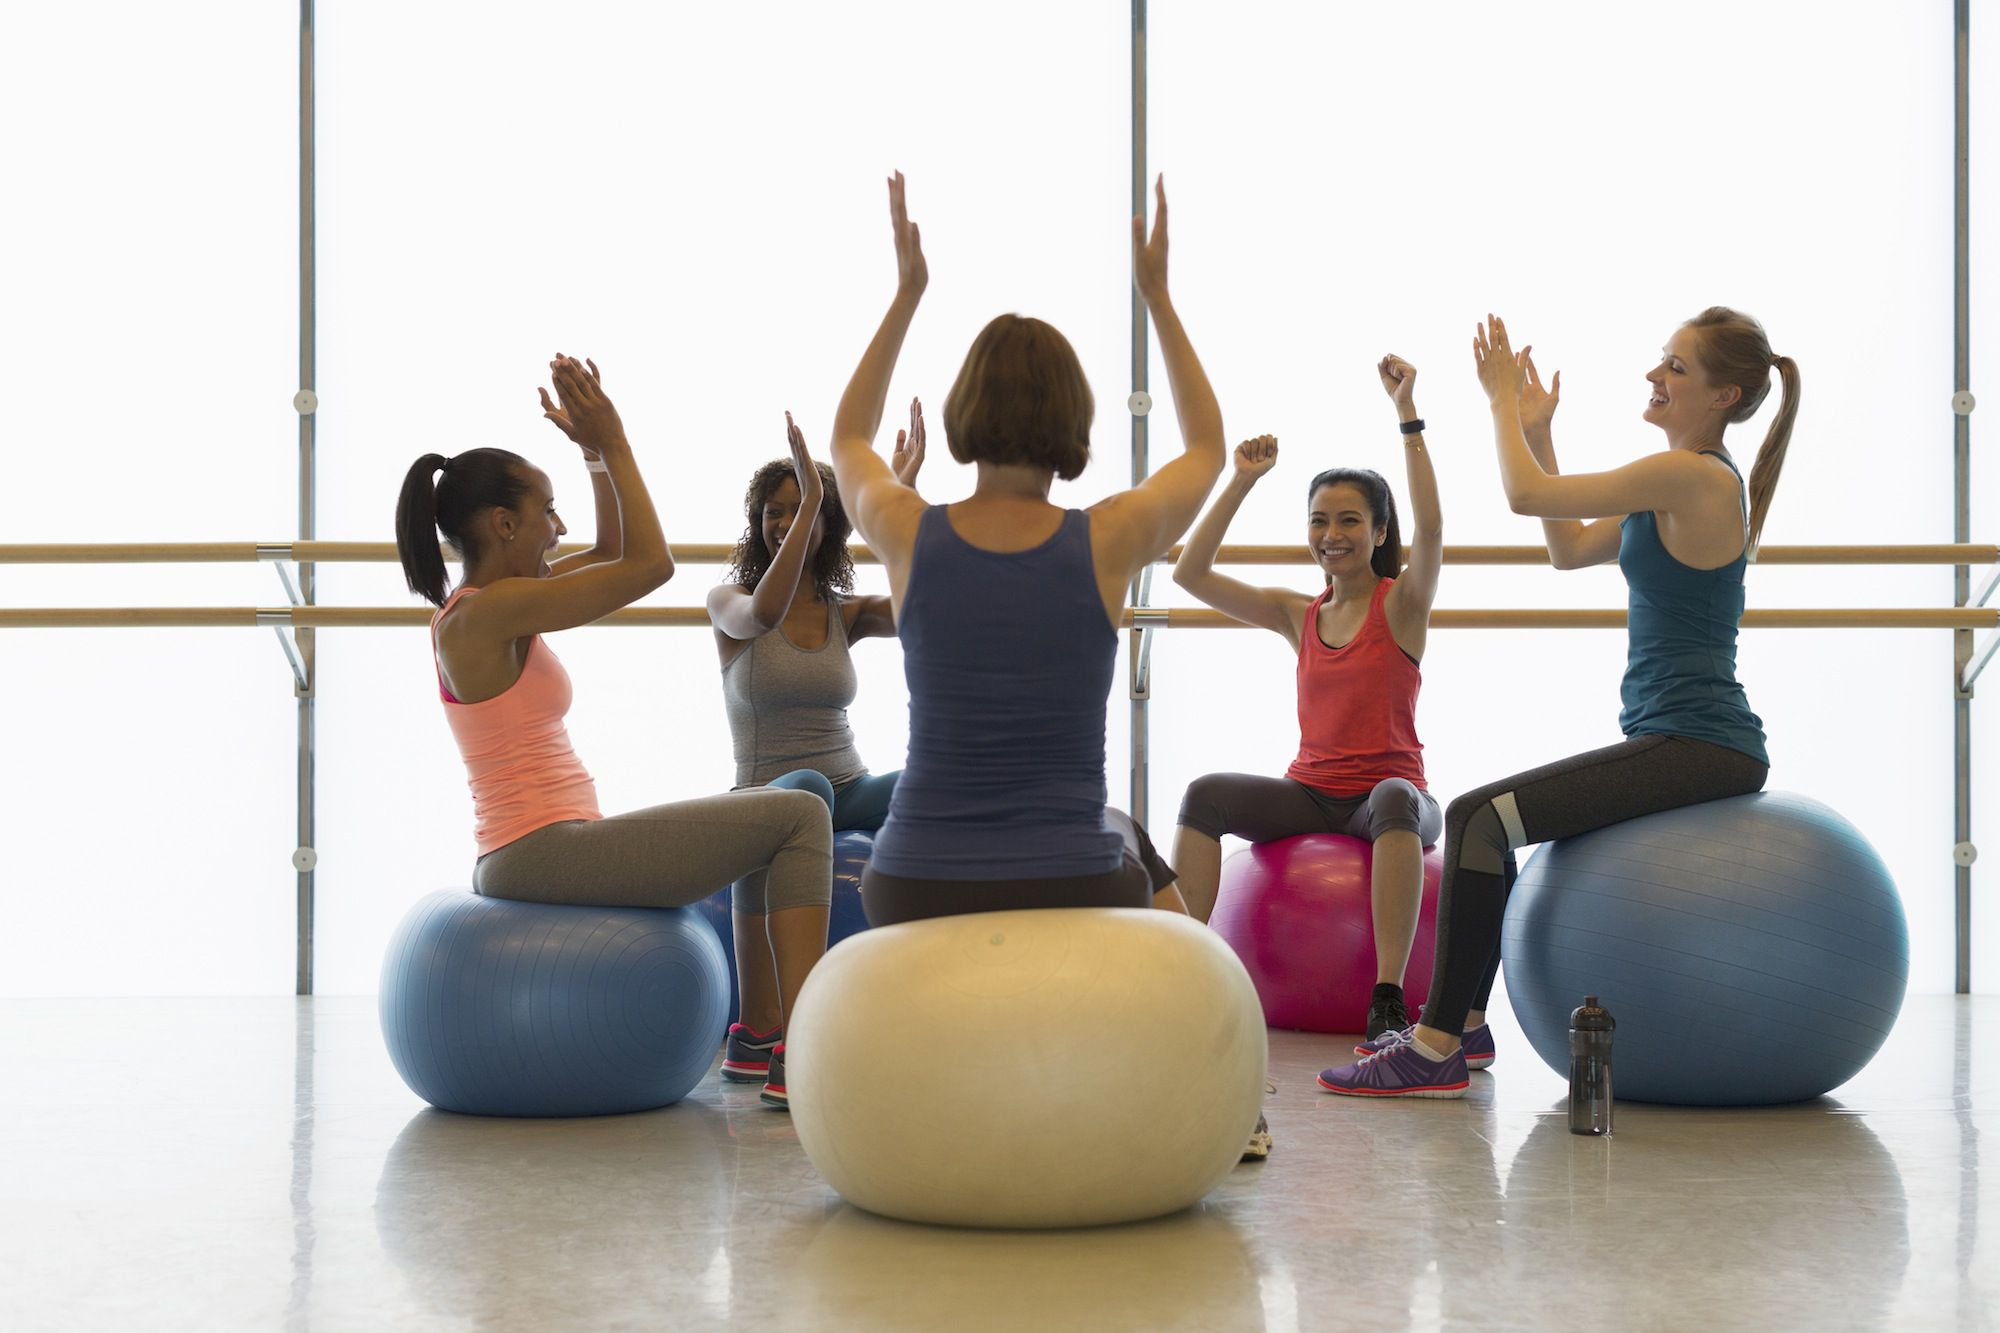 chair gym weight loss video game best buy types of exercise balls for workouts